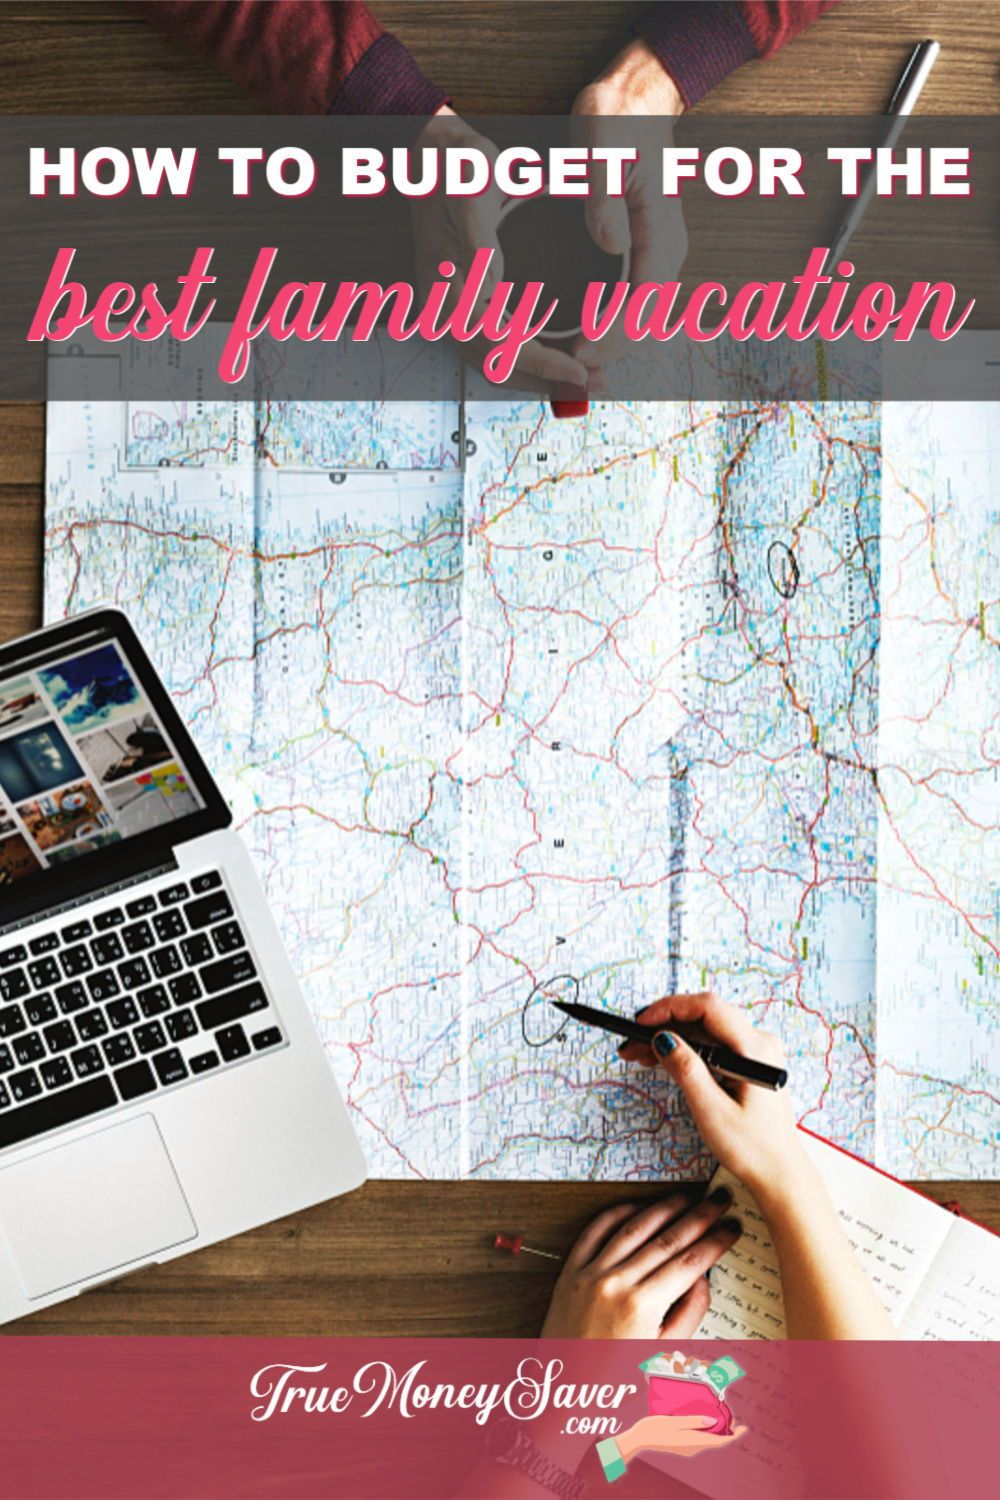 Need to learn how to plan a family vacation on a budget? I've got the best tips to make the best family vacations on a budget a reality! Learn how to make cheap budget family vacations today! #truecmoneysaver #budgetvacation #budgetvacations #budgetvacationer #budgetvacation4u #budgetvacationing #budgetvacationideas #budgetvacationers #budgetvacationday #budgetfamilyvacation #familyvacation #familyvacations #familyvacationideas #familyvacationplanner #familyvacationgoals #familyvacationtime